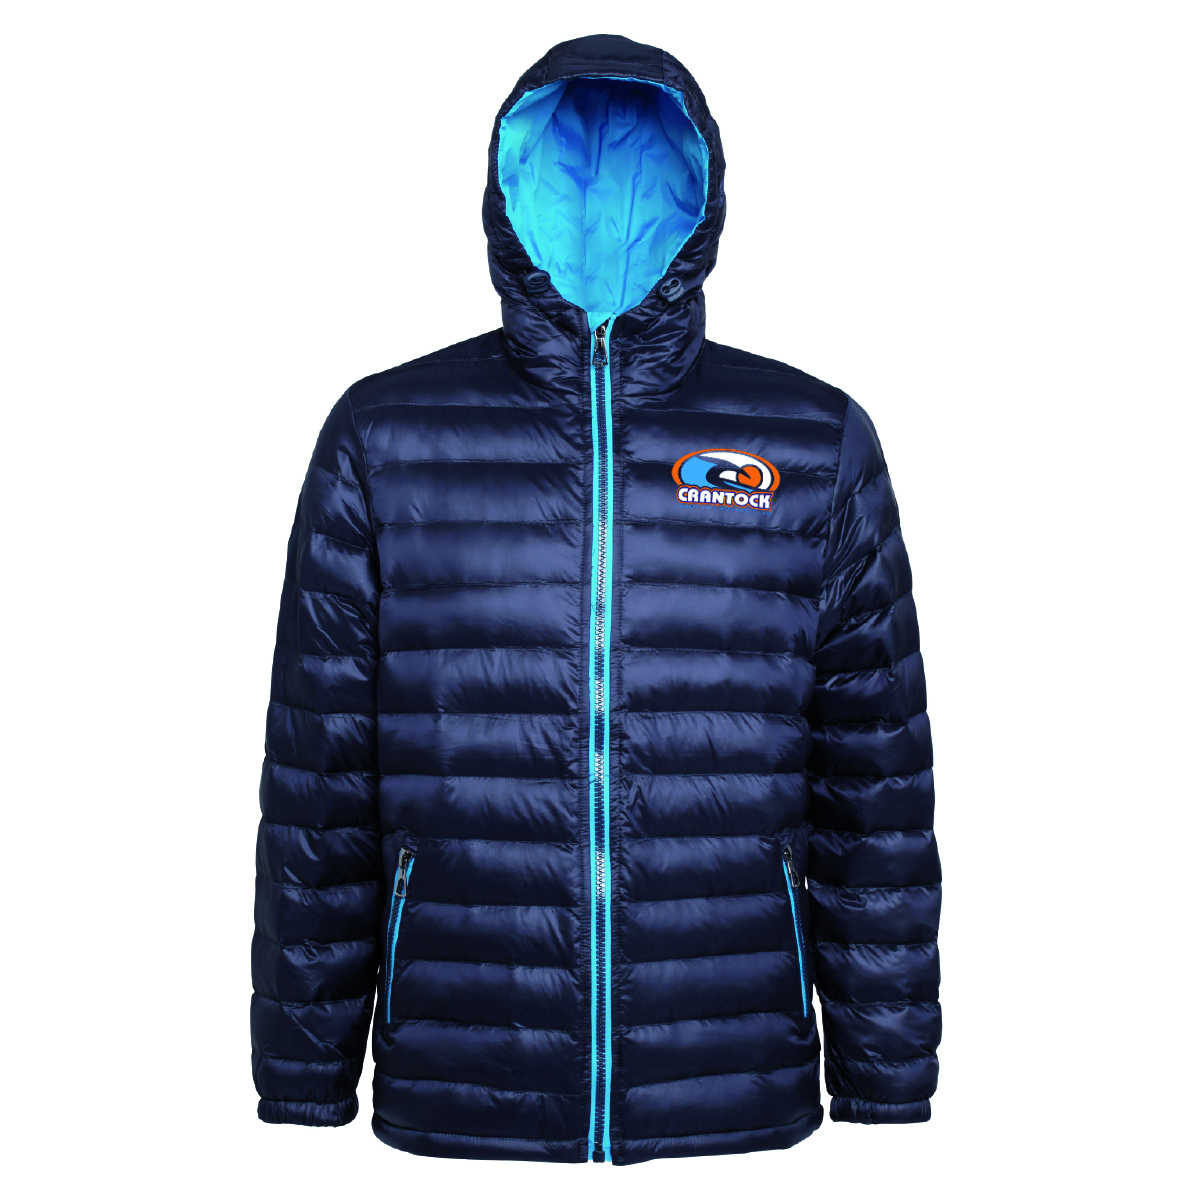 CSLSC Snow Bird Jacket